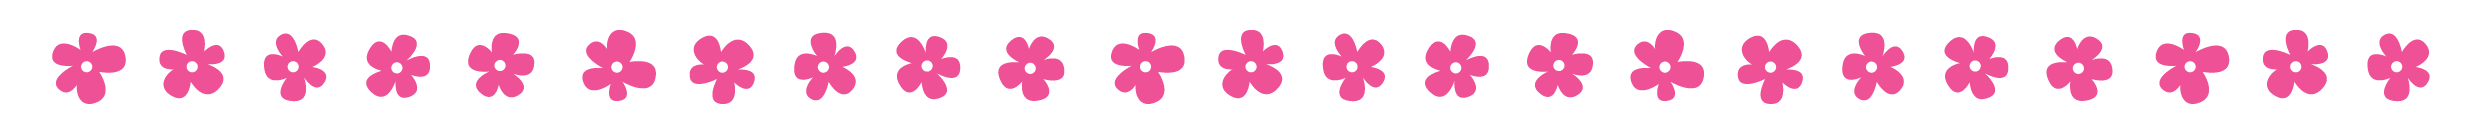 flower_chain_pink.png